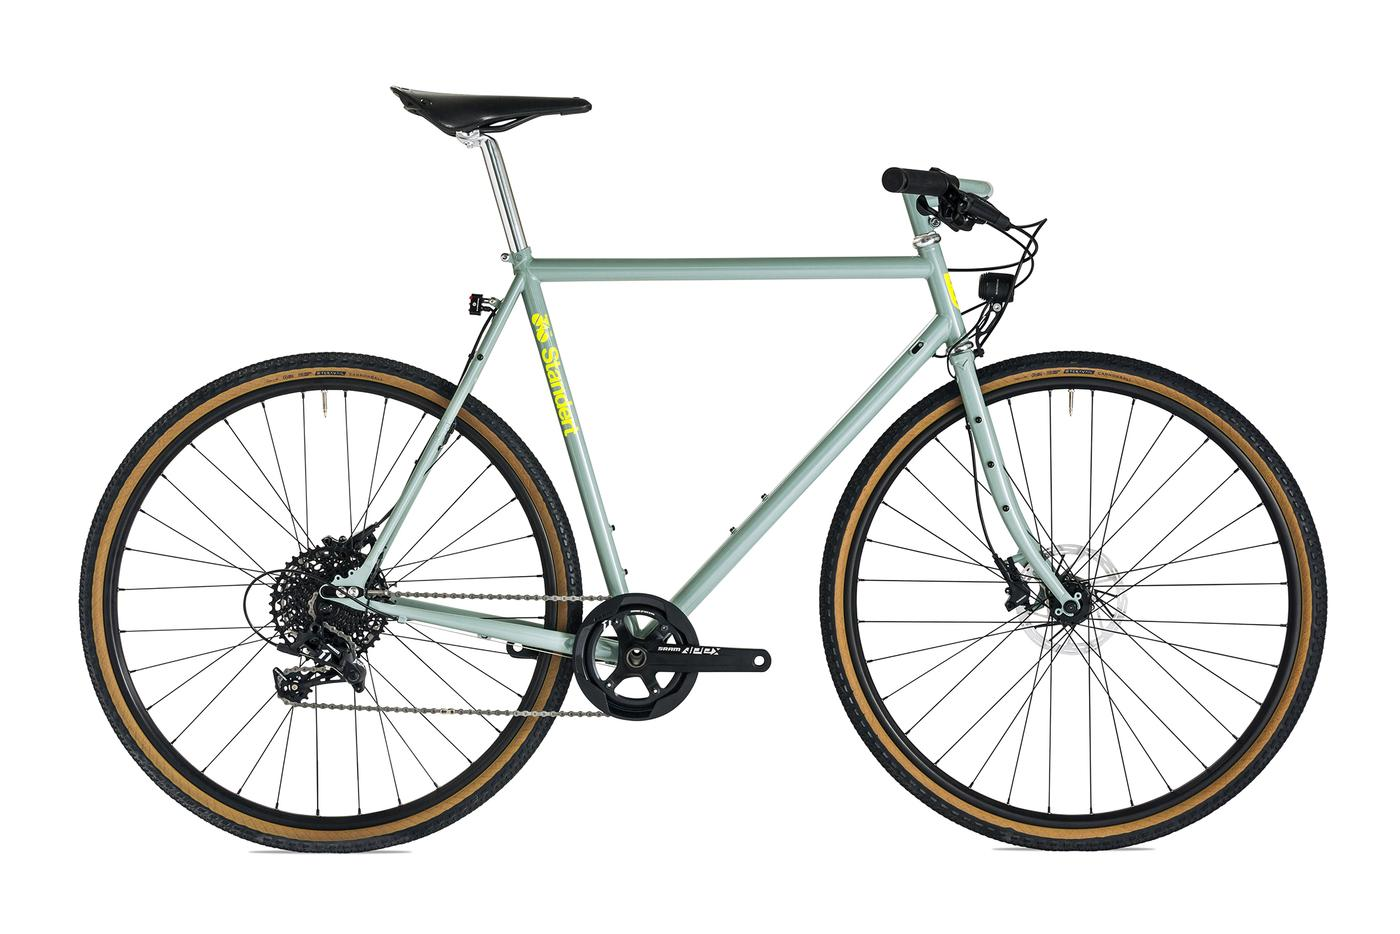 The Standert Bürgermeister*In is a Beautiful Commuter or Touring Bike